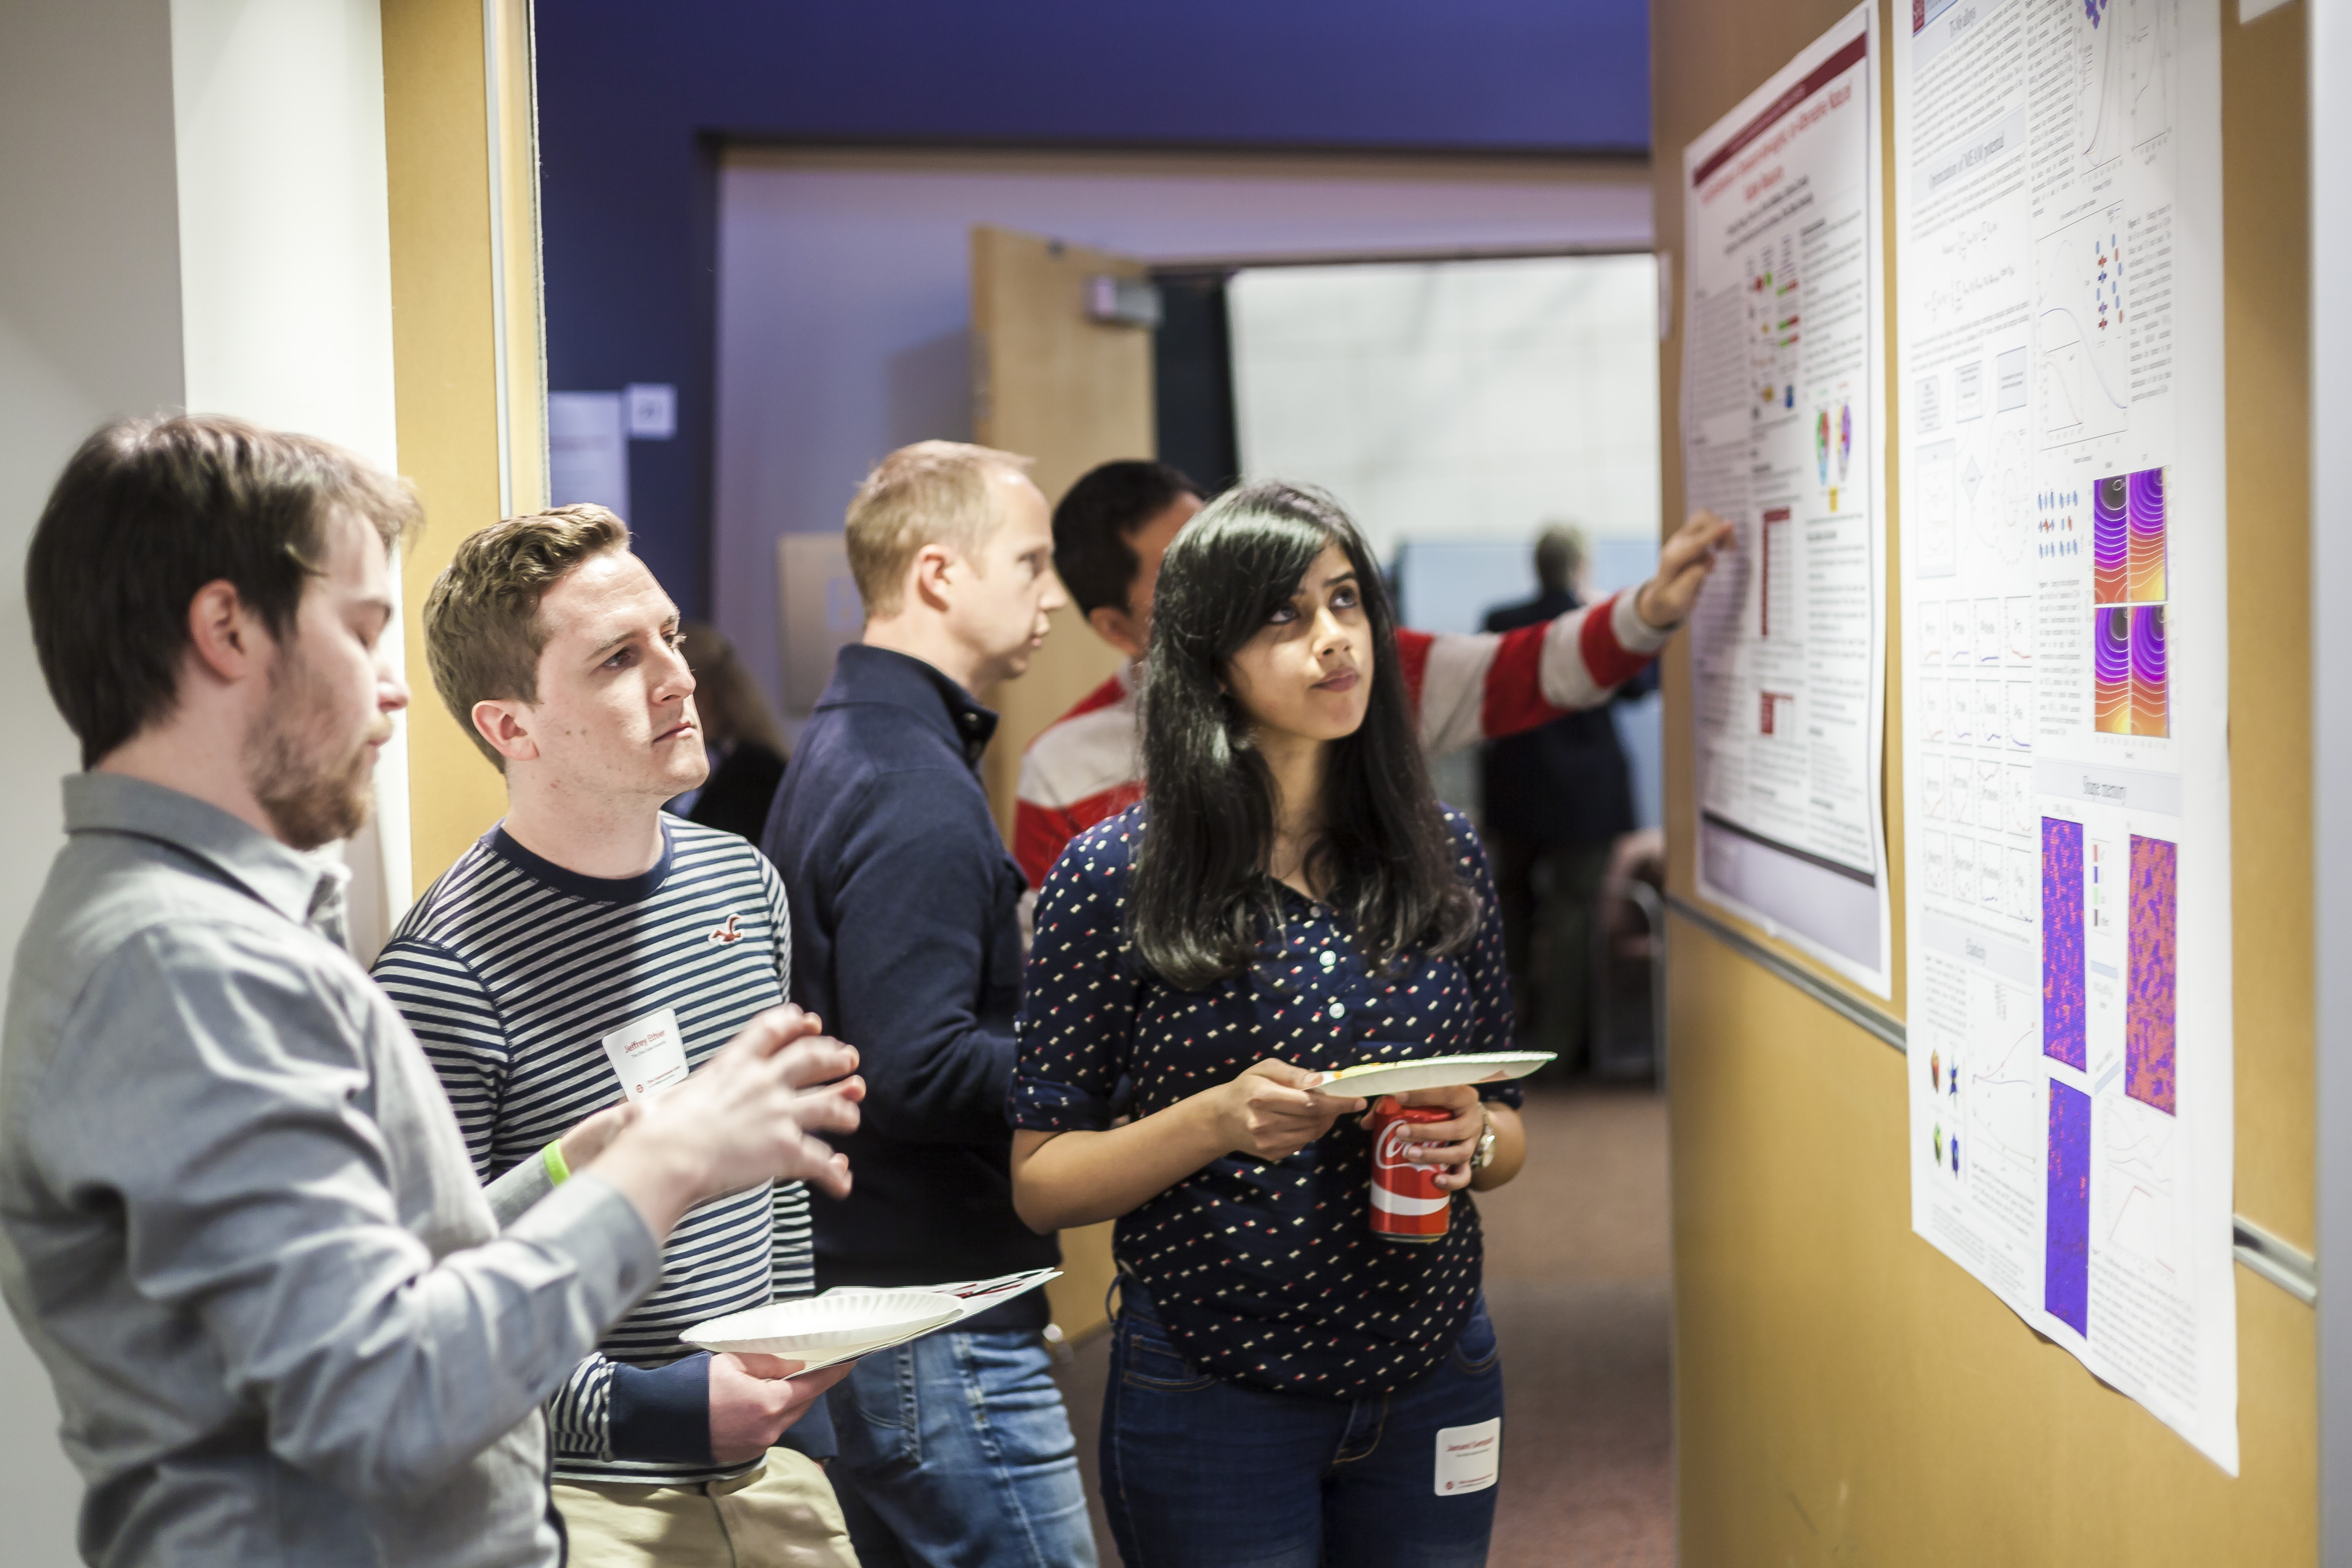 Attendees to the Dec. 3 SUG meeting discuss research during the Poster competition.